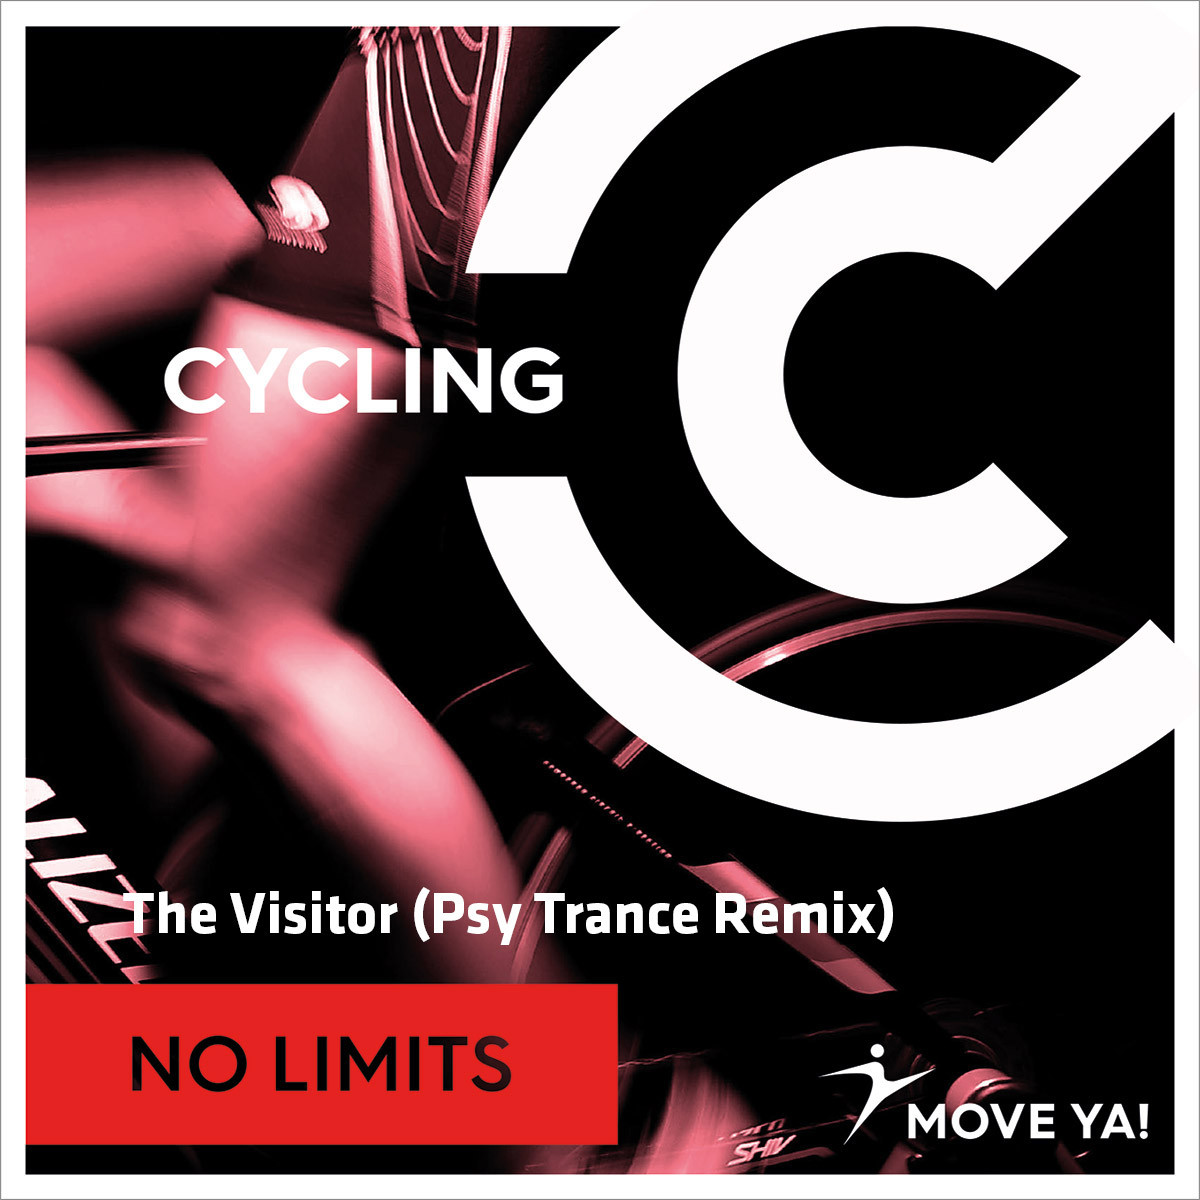 The Visitor (Psy Trance Remix)